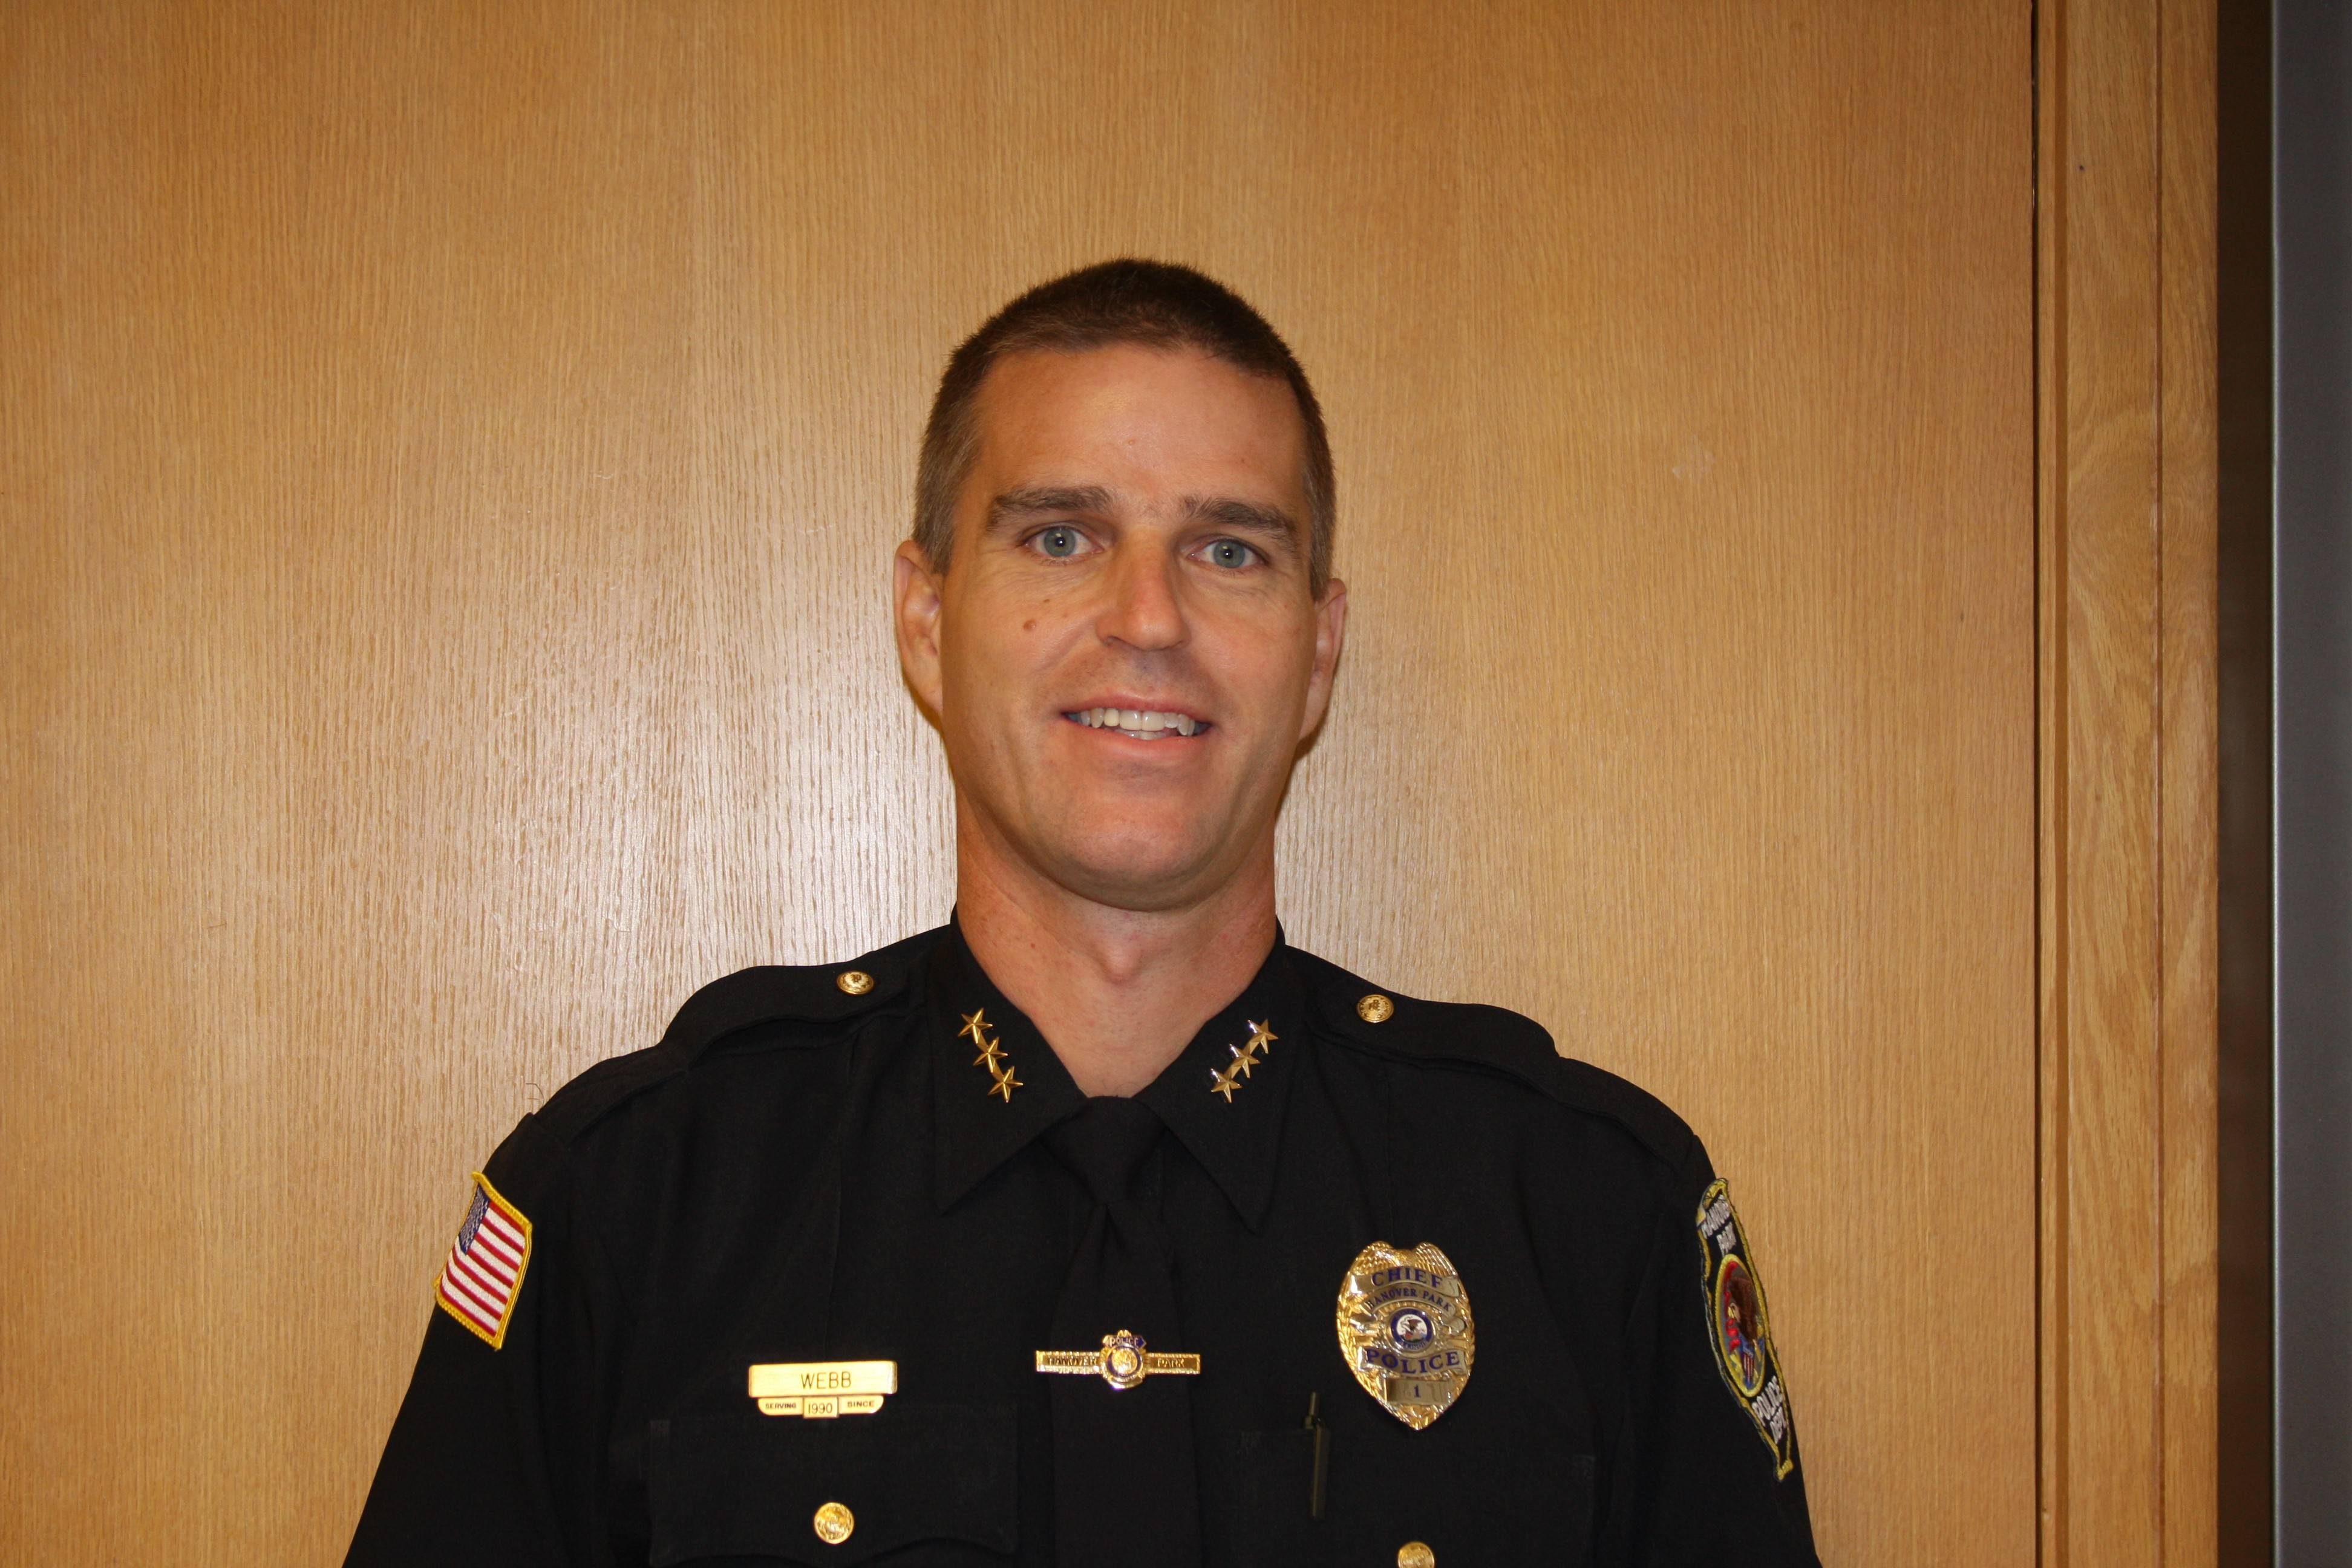 Hanover Park Police Chief David Webb